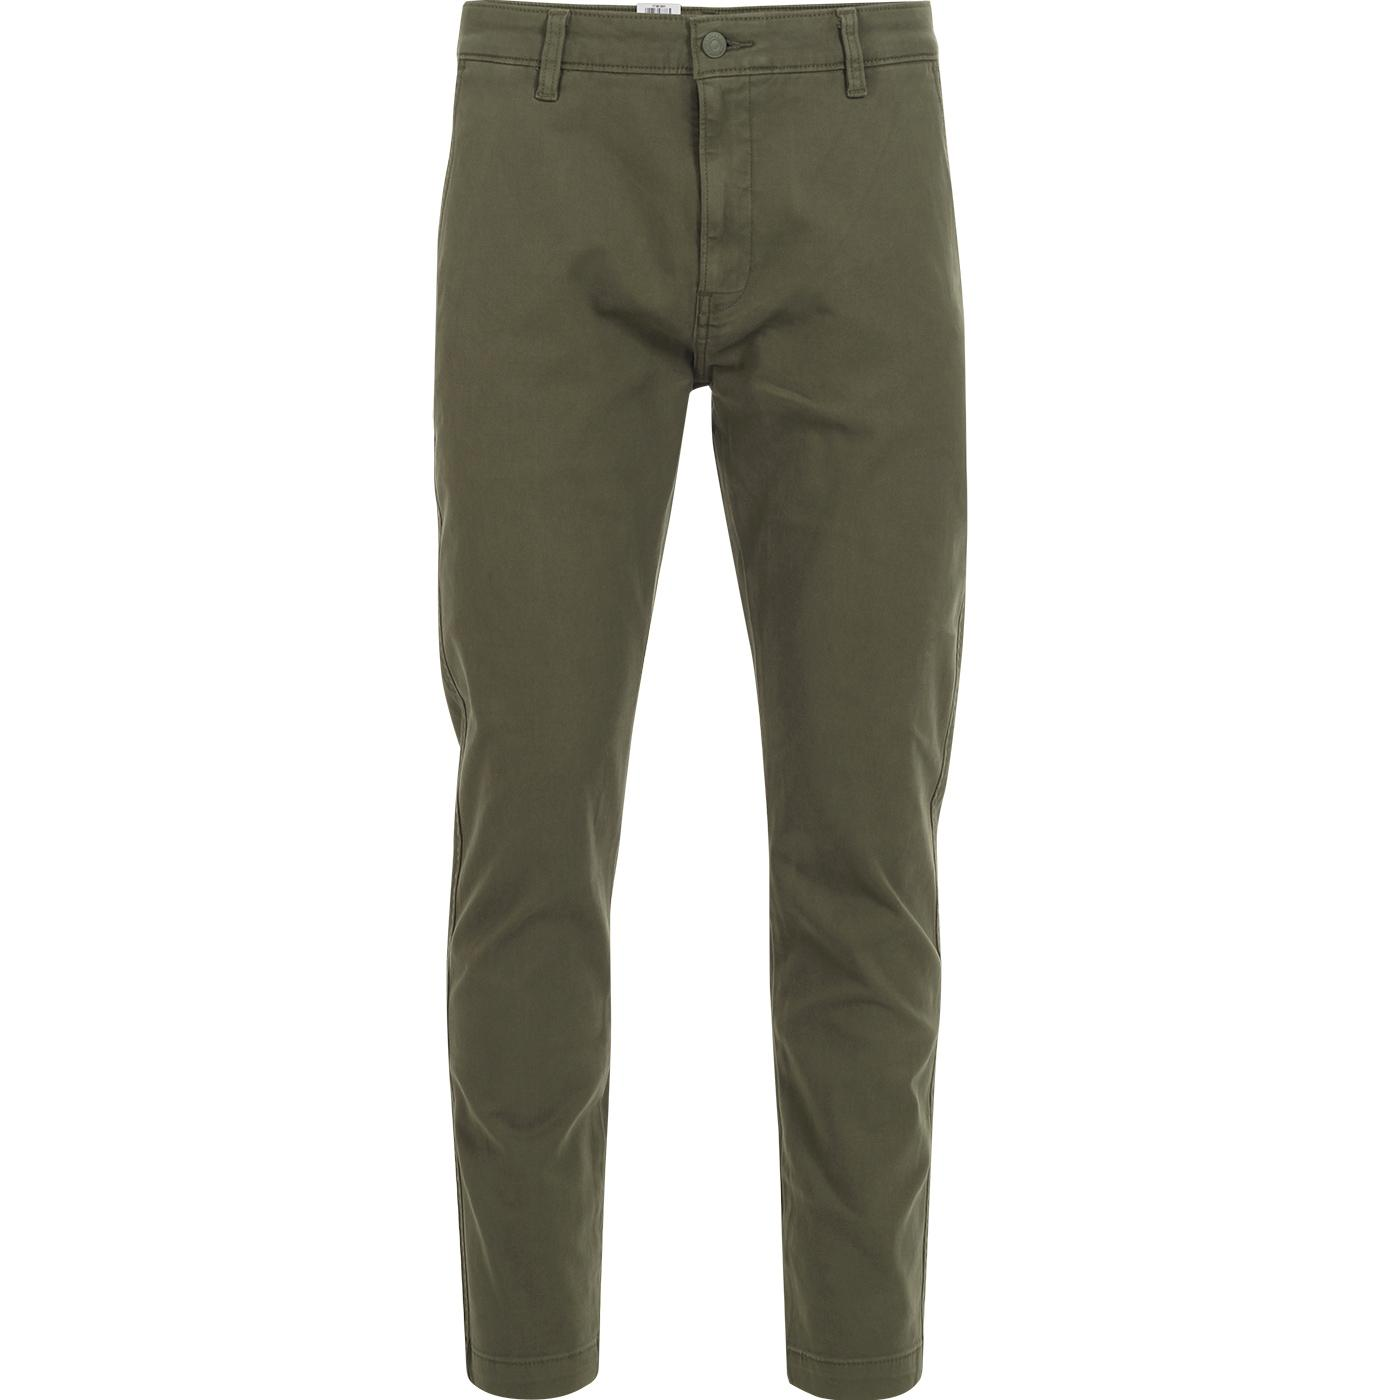 LEVI'S Standard Taper XX Chino Trousers (Olive)